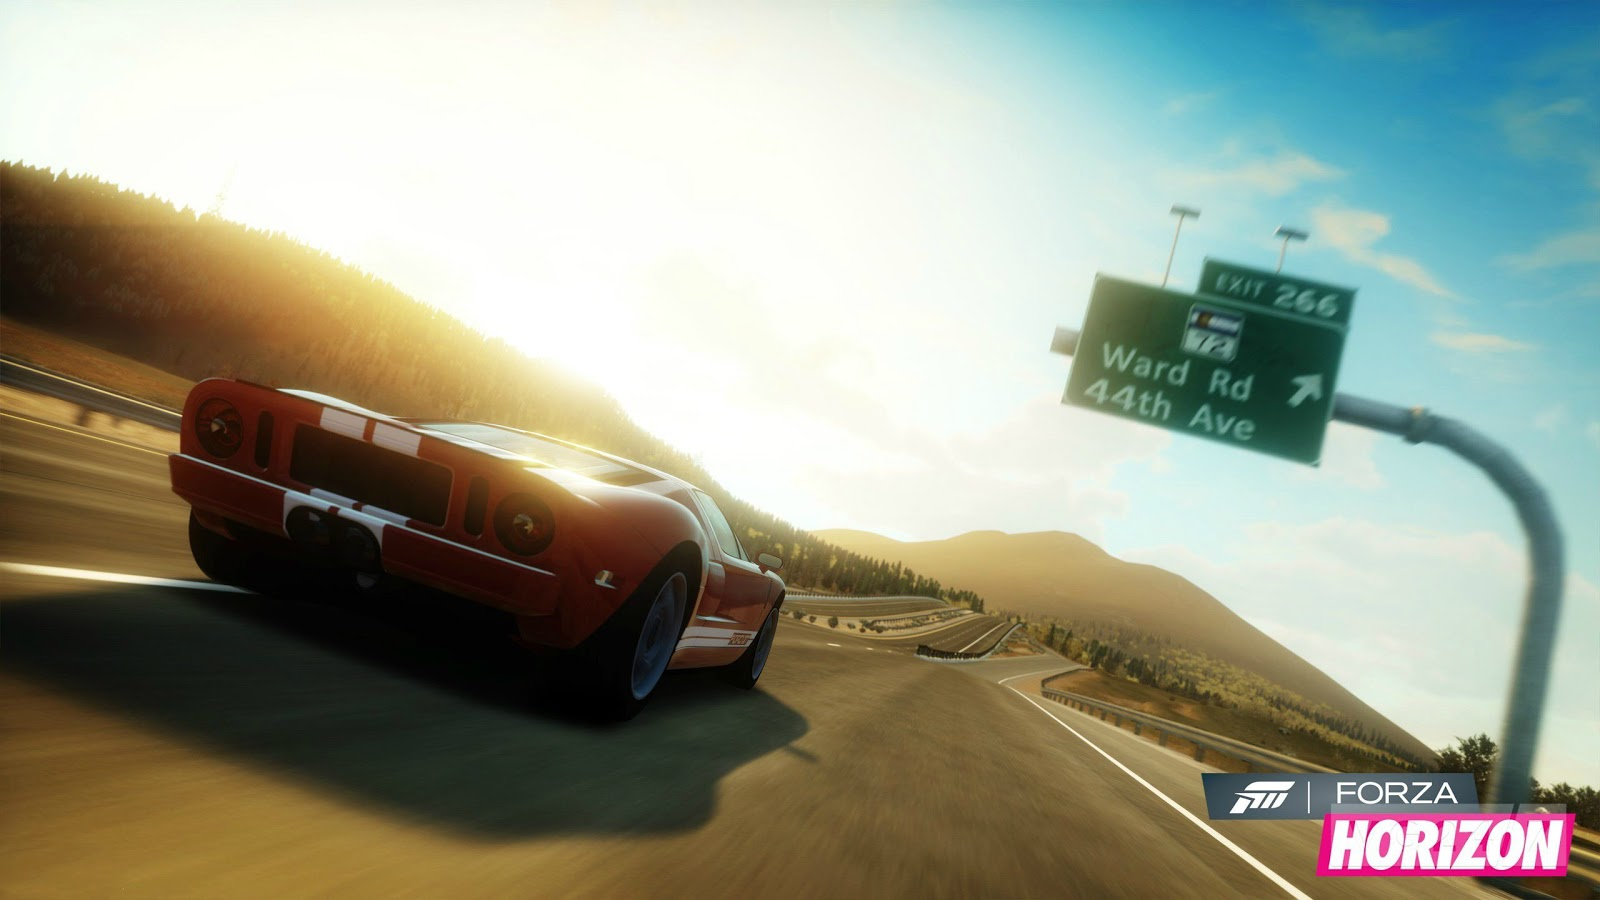 Forza Horizon HD & Widescreen Wallpaper 0.313295865517595